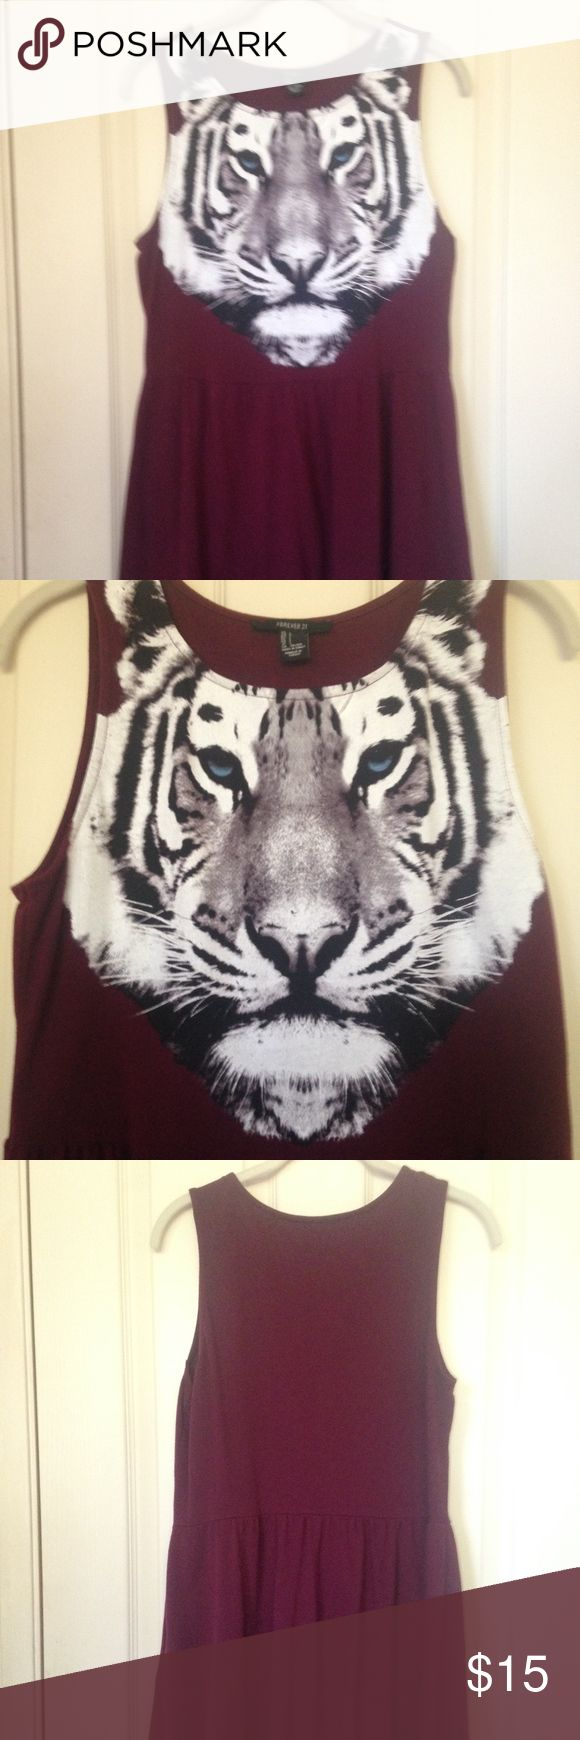 Tiger Print Dress Maroon sleeveless tiger print dress. Design on from of white tiger with blue eyes. Good condition. No tags. Size Large. Bust 17 inches, waist 16 inches and length is 32 inches. Shell 100% cotton. Forever 21 Dresses